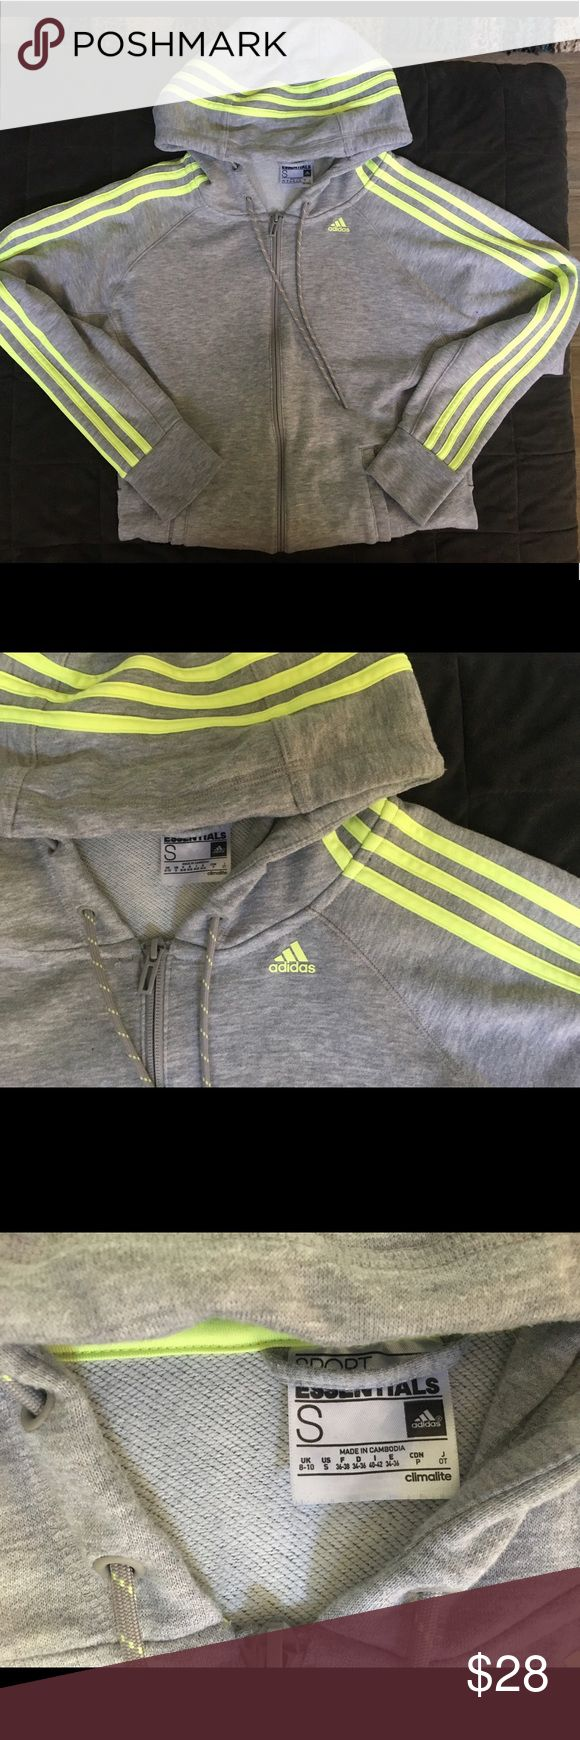 Adidas Neon Zip Up 3 stripe cotton zip up by Adidas. Purchased from official Adidas store. Worn handful of times, in GREAT condition. Minimal pilling that is not noticeable at all. Grey with neon yellow stripes going from hood to arms. Women's small, fits big so fits a medium as well. Adidas Sweaters